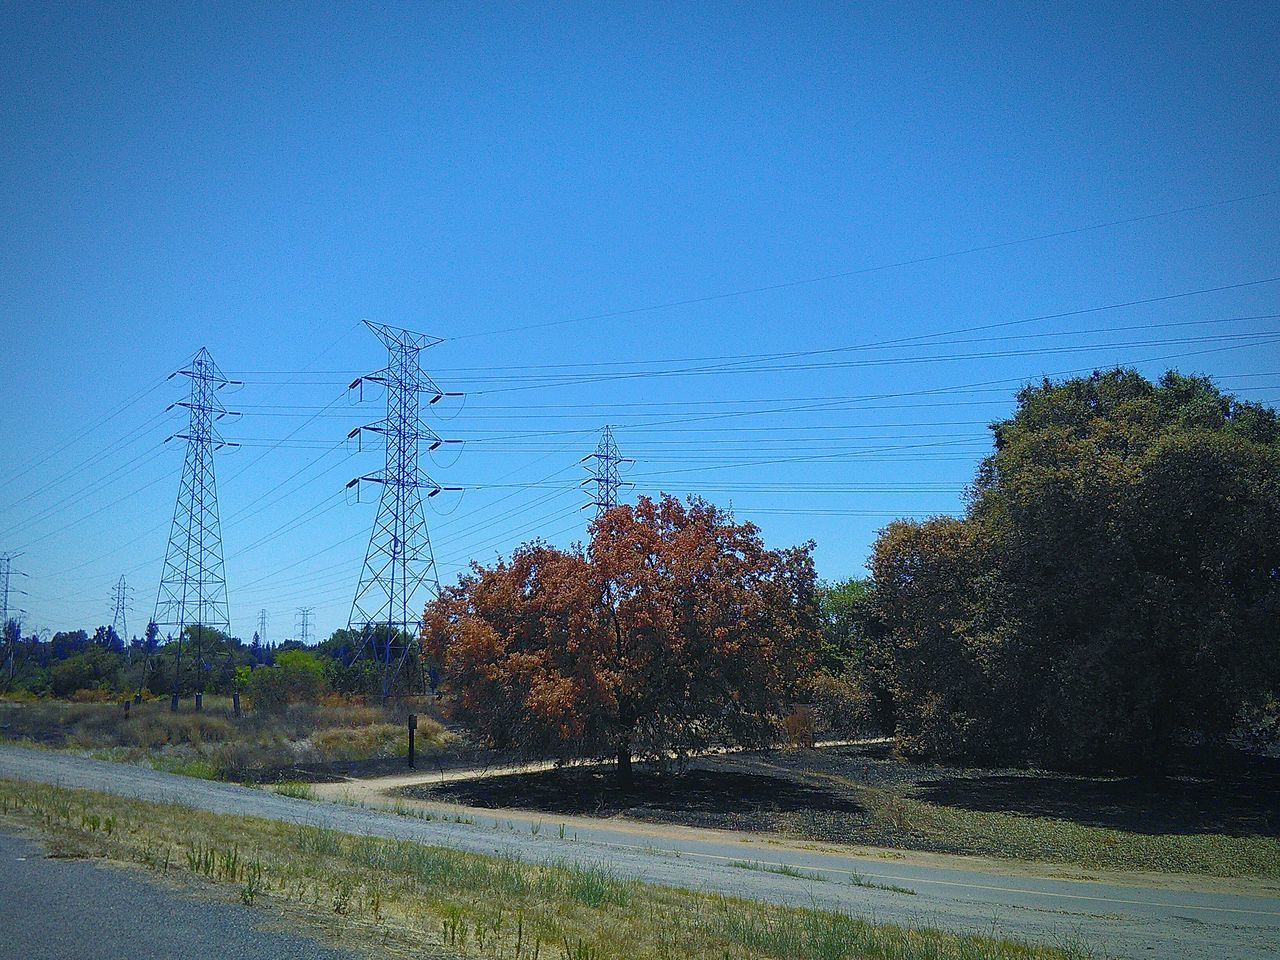 Trees And Nature Trees And Sky Power Lines Against Sky Electricity Pylon Electricity Wires And Cables Bike Path My Photography Walking Around Sacramento, California Nature Trail Trail Electricity Wires Trees And Bushes Fire Scorched Grass Showcase July